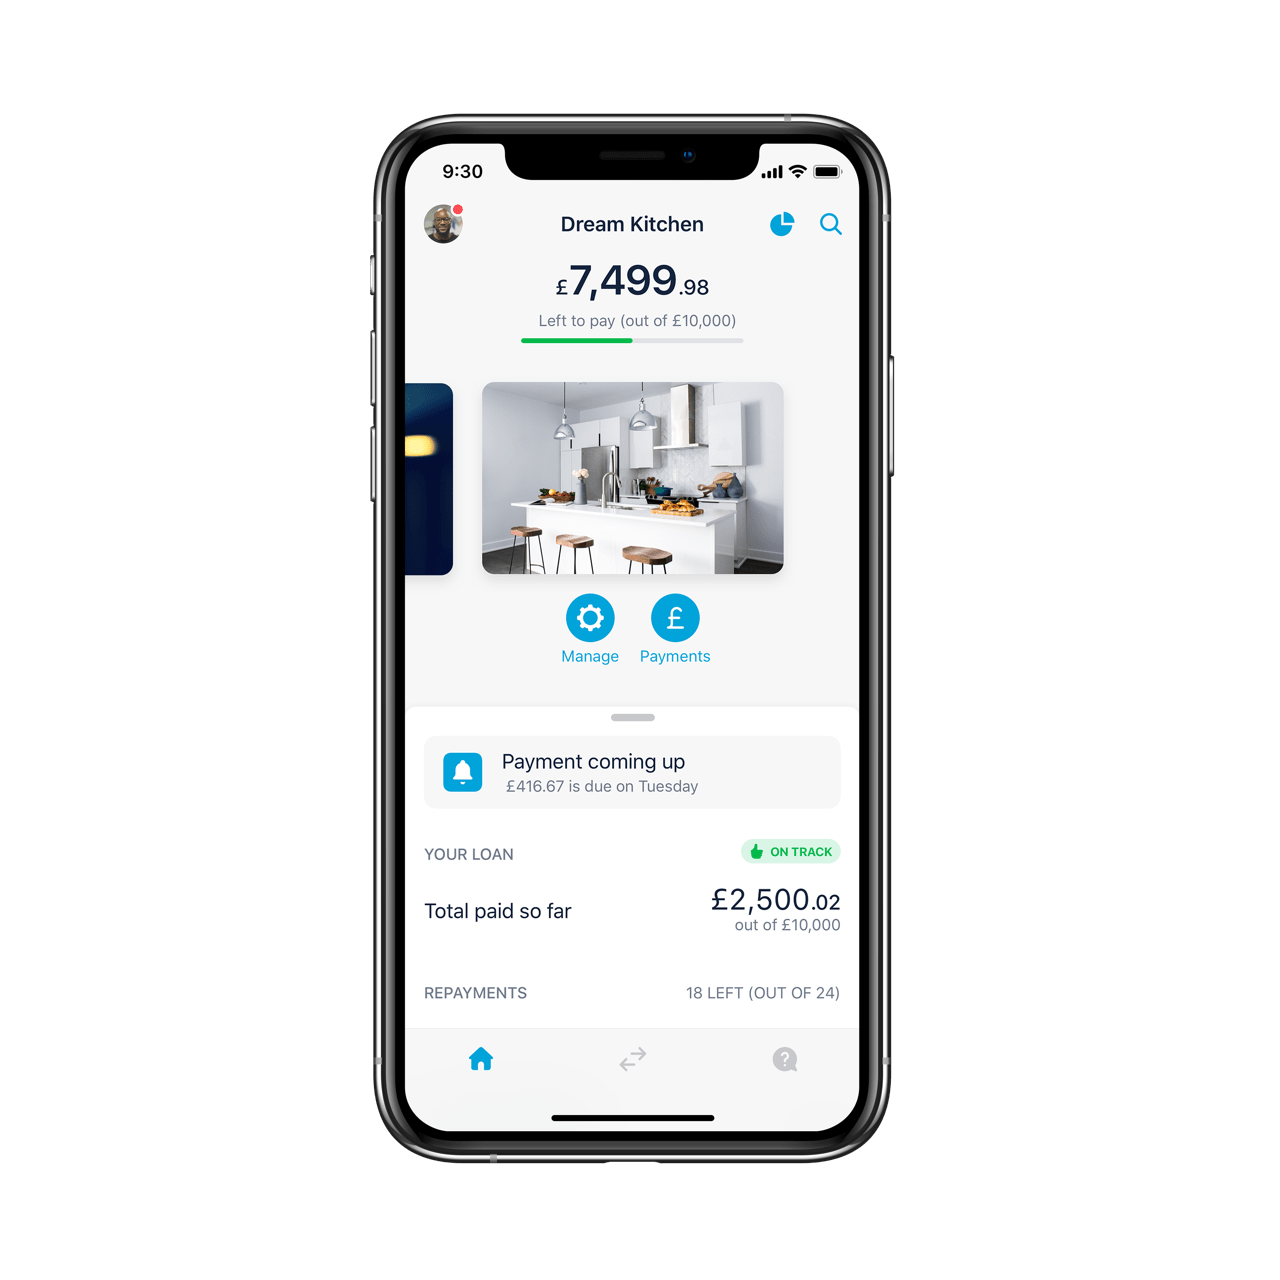 A loan within the Monzo app